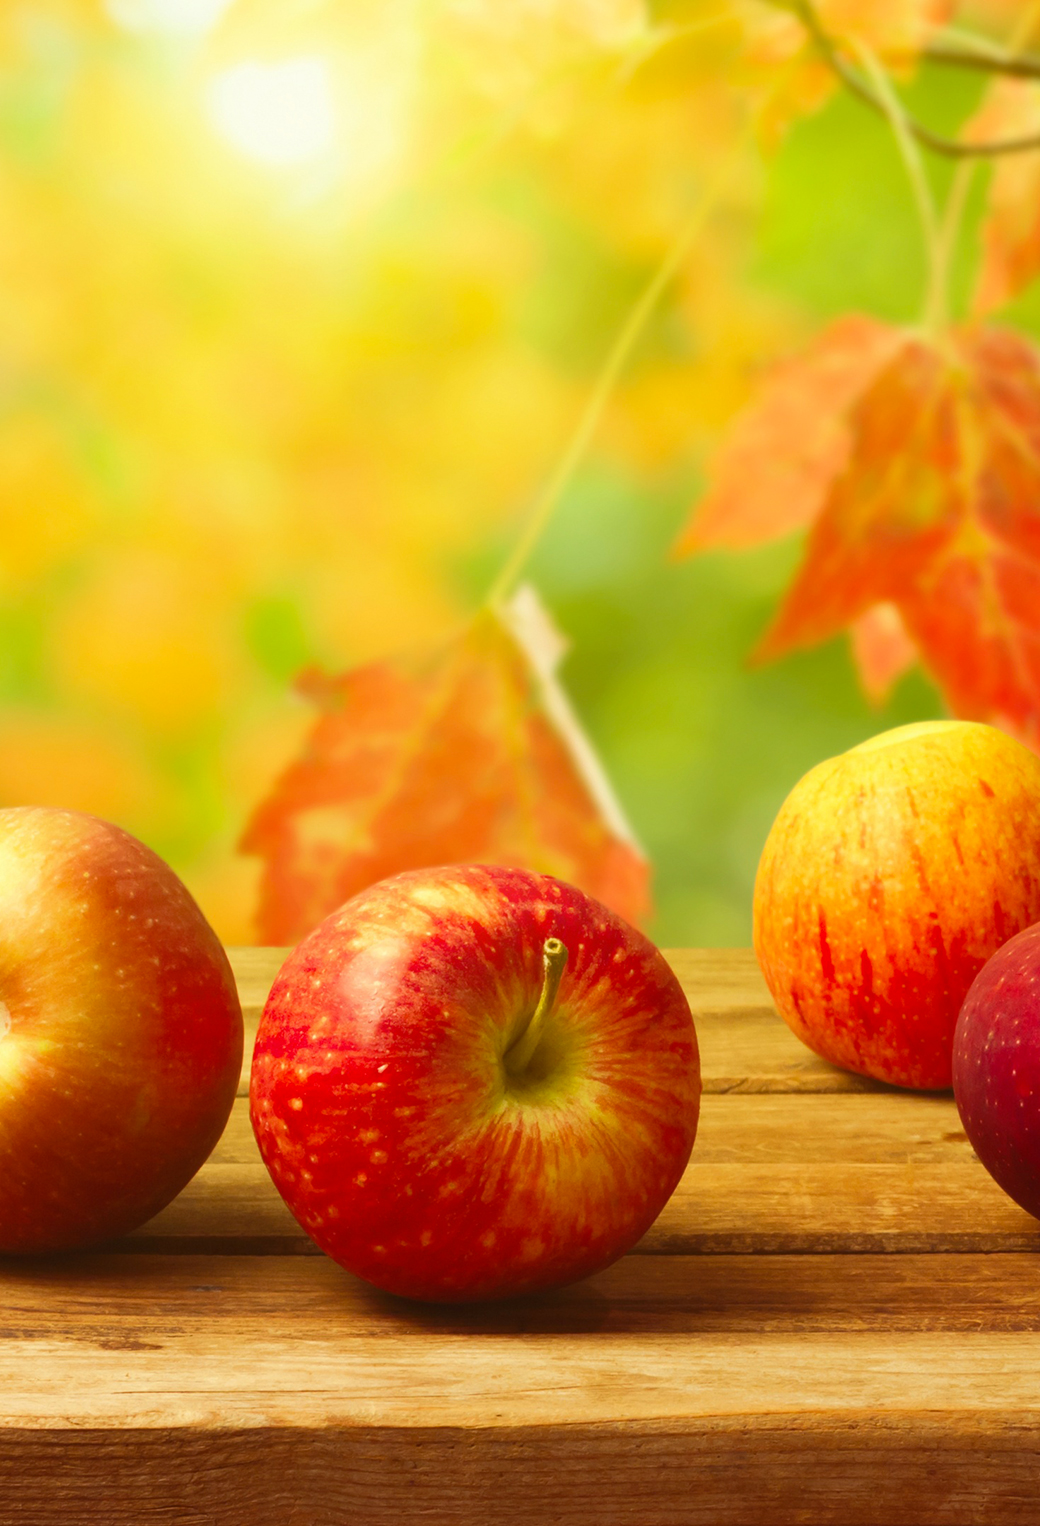 Fall Apples 3Wallpapers iPhone Parallax Fall Apples